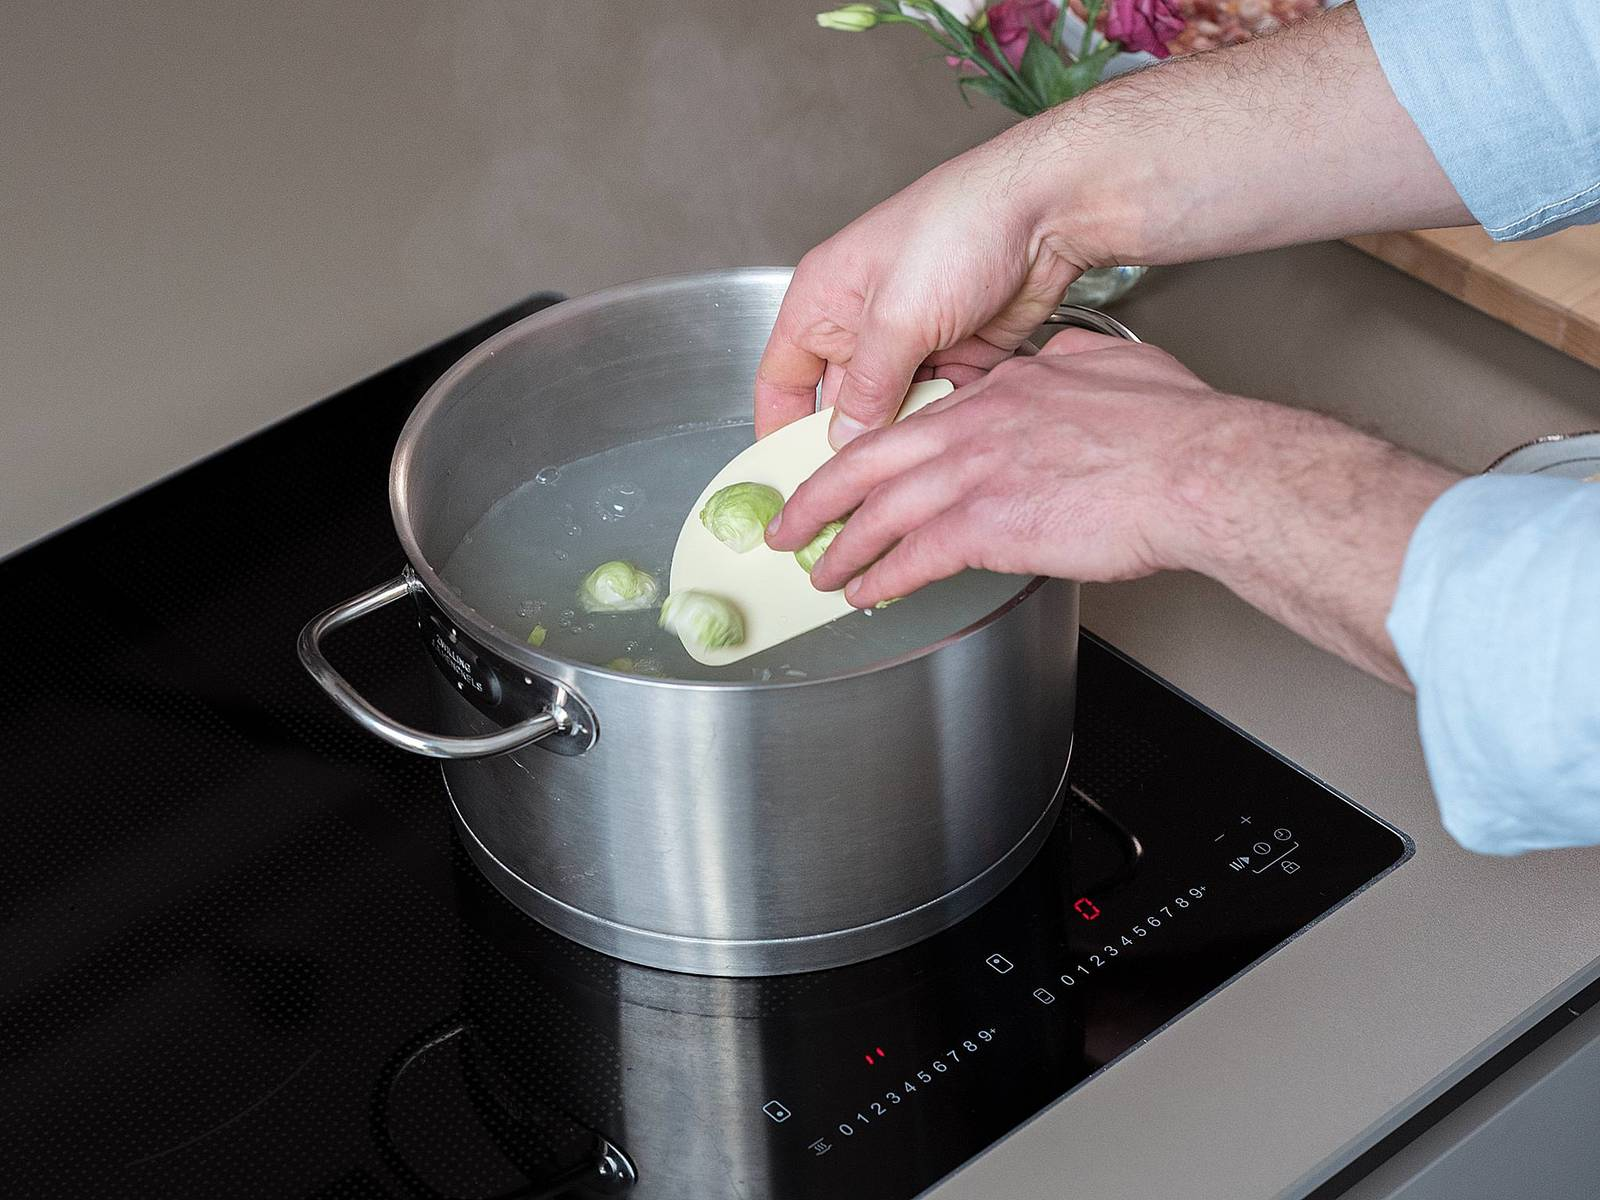 Drain pasta and transfer cooking water back into pot. Add Brussels sprouts and blanch for 3 – 5 min.